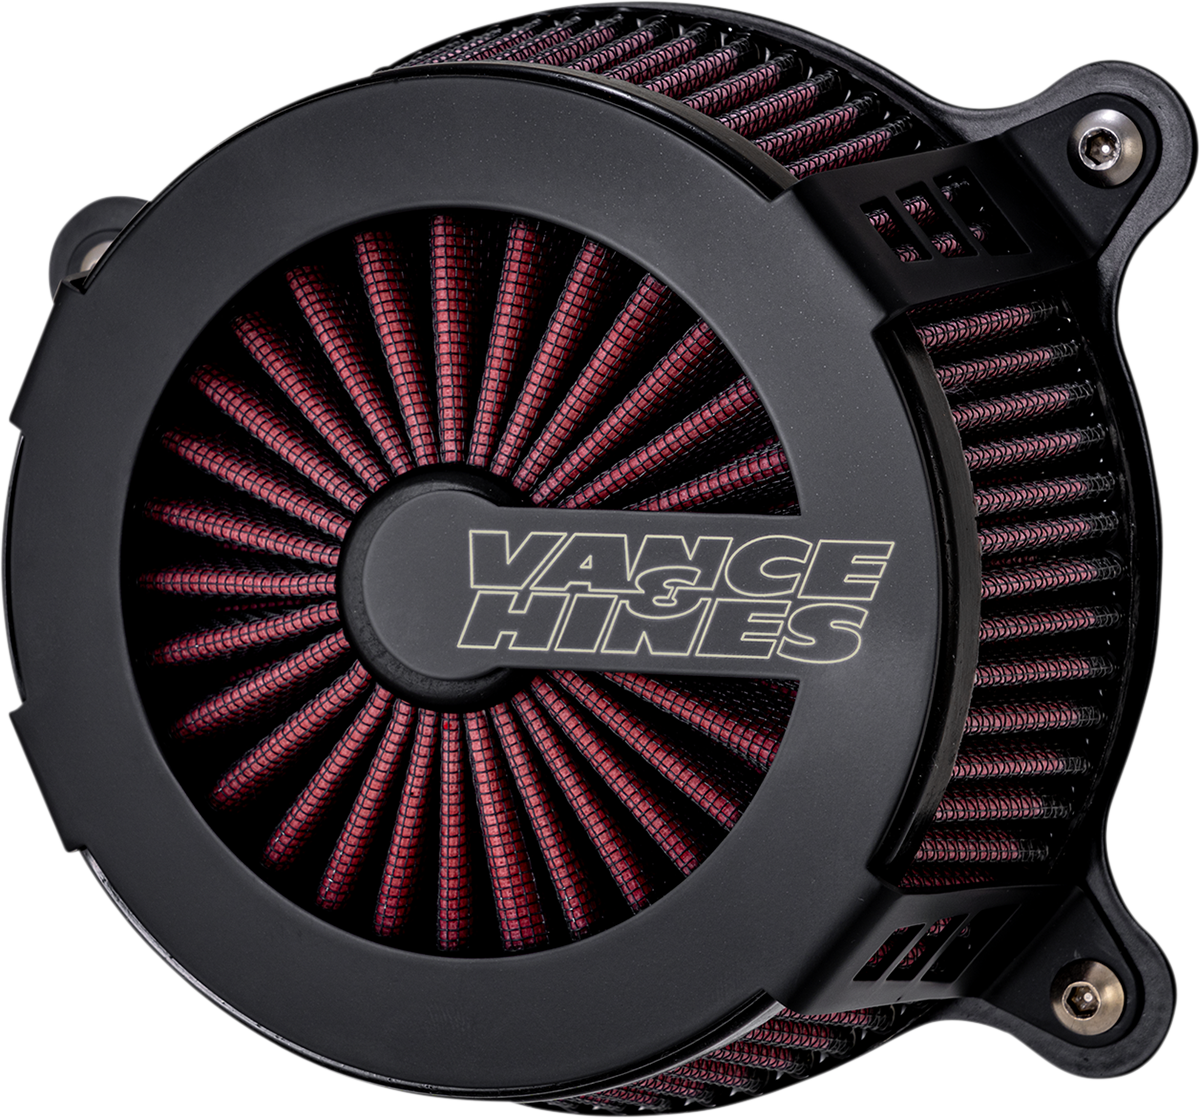 Vance & Hines VO2 Cage Fighter Air Cleaner Kit 08-16 Harley Touring FLHX FLHR